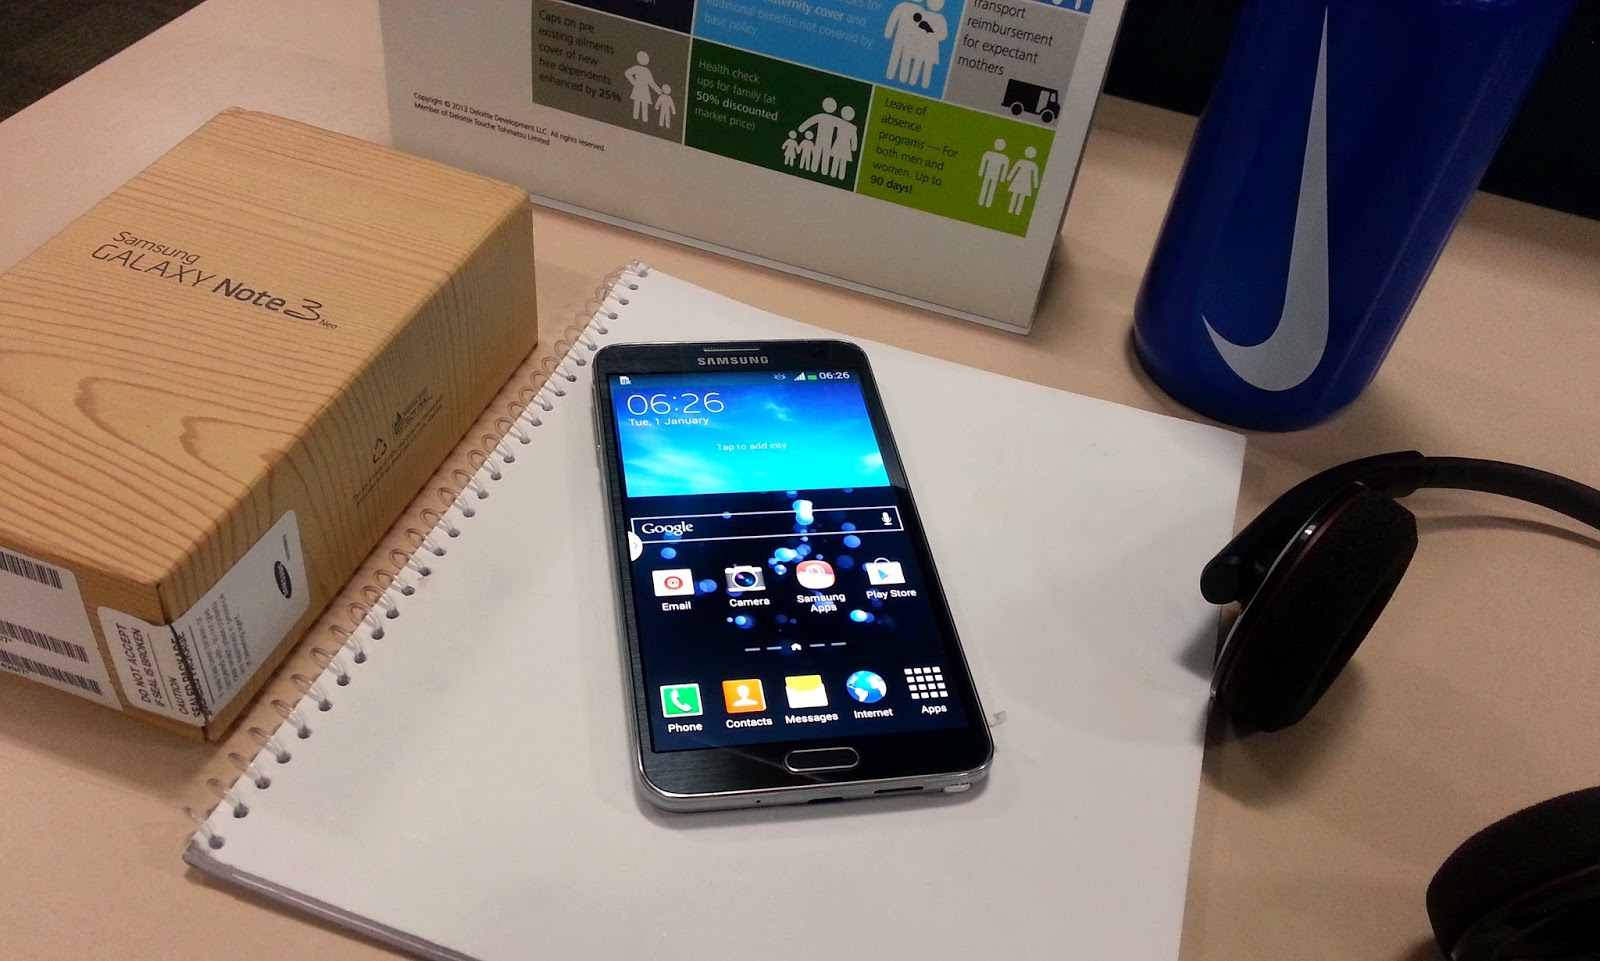 How to use scrapbook on galaxy note 3 - How To Use Scrapbook On Galaxy Note 3 78